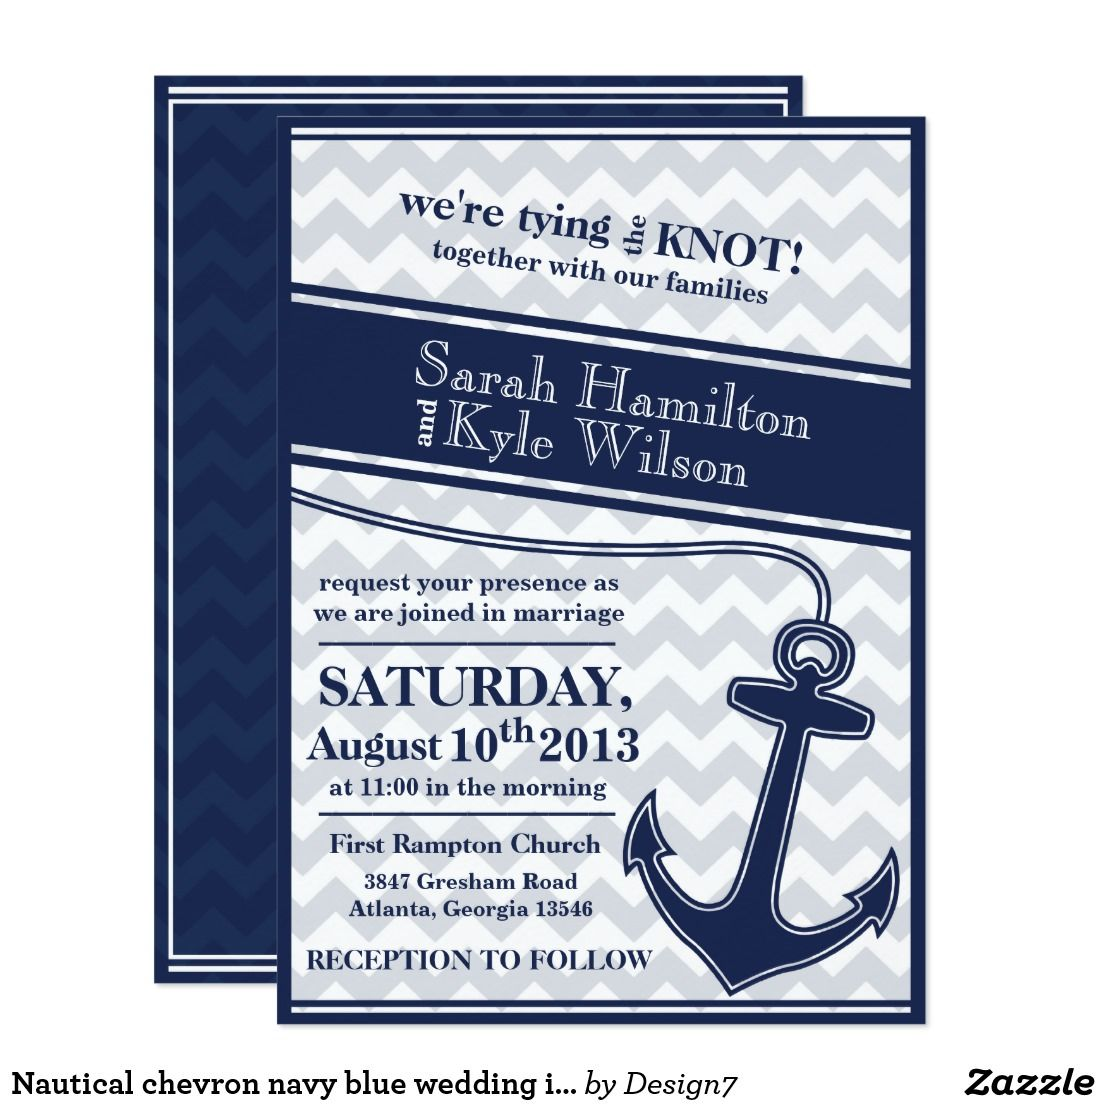 Nautical Chevron Navy Blue Wedding Invitation Wedding Nautical